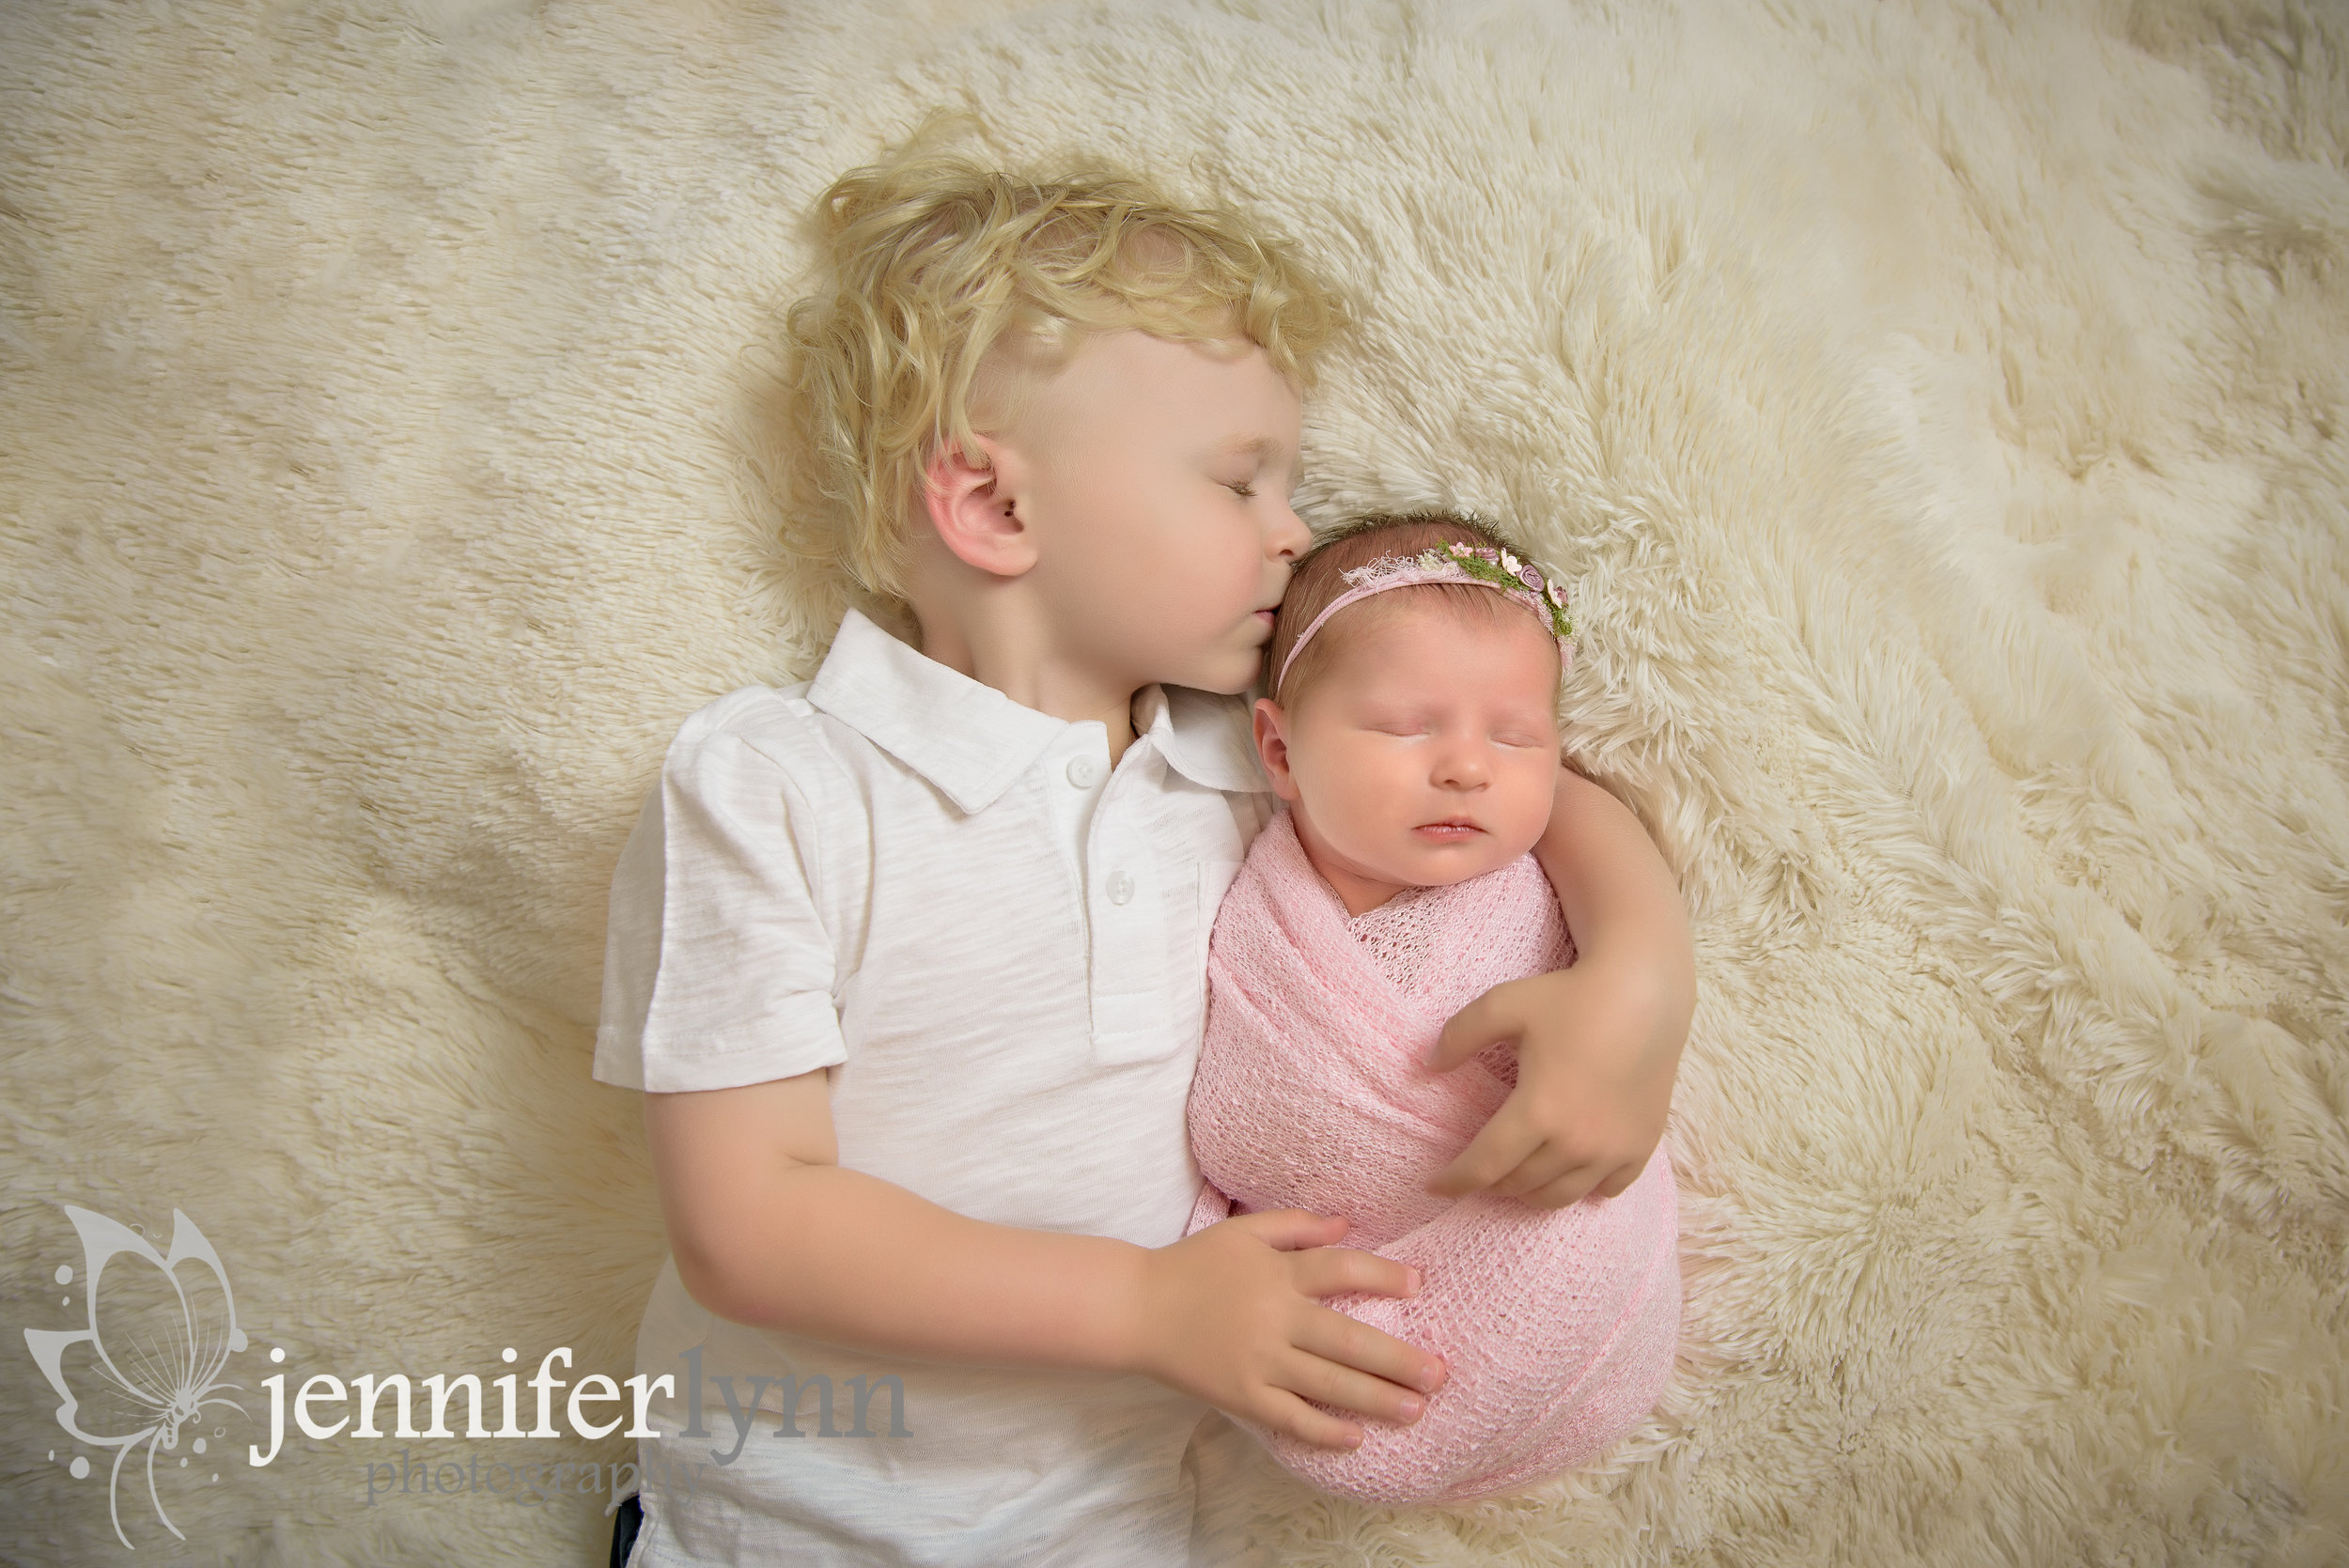 Brother and Newborn Sister Photo